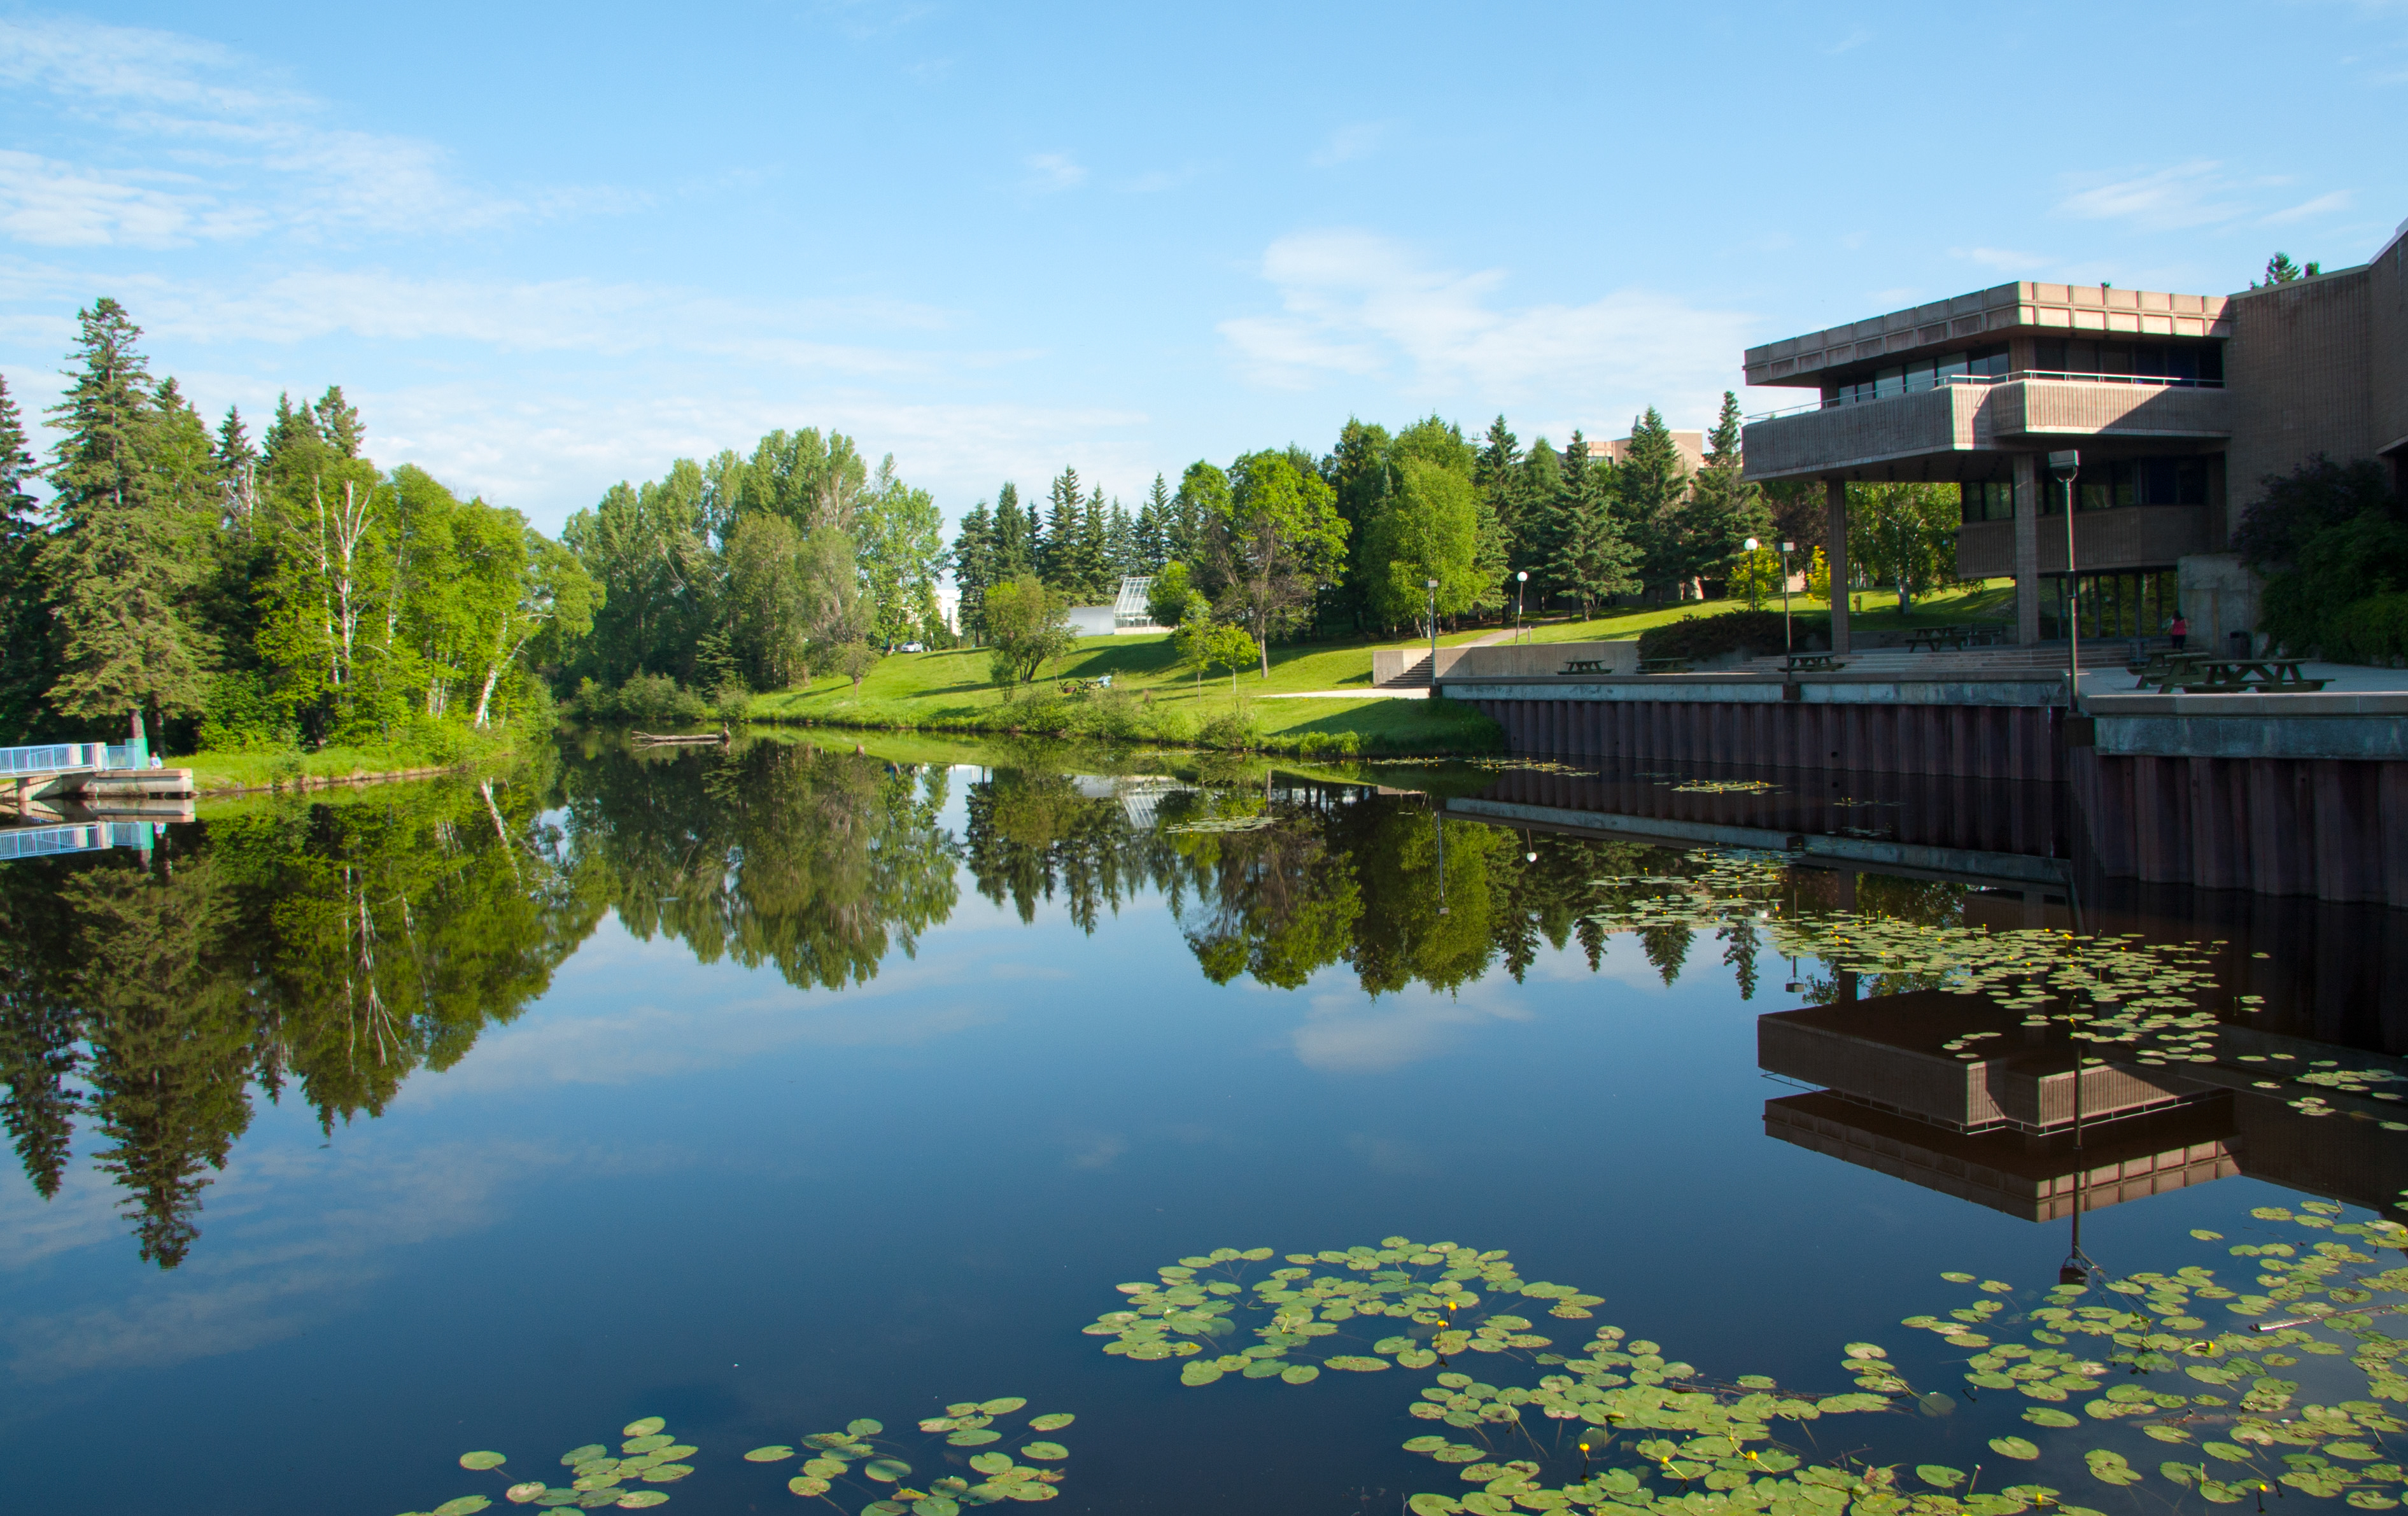 Thunder Bay campus, Lake Tamblyn in summer